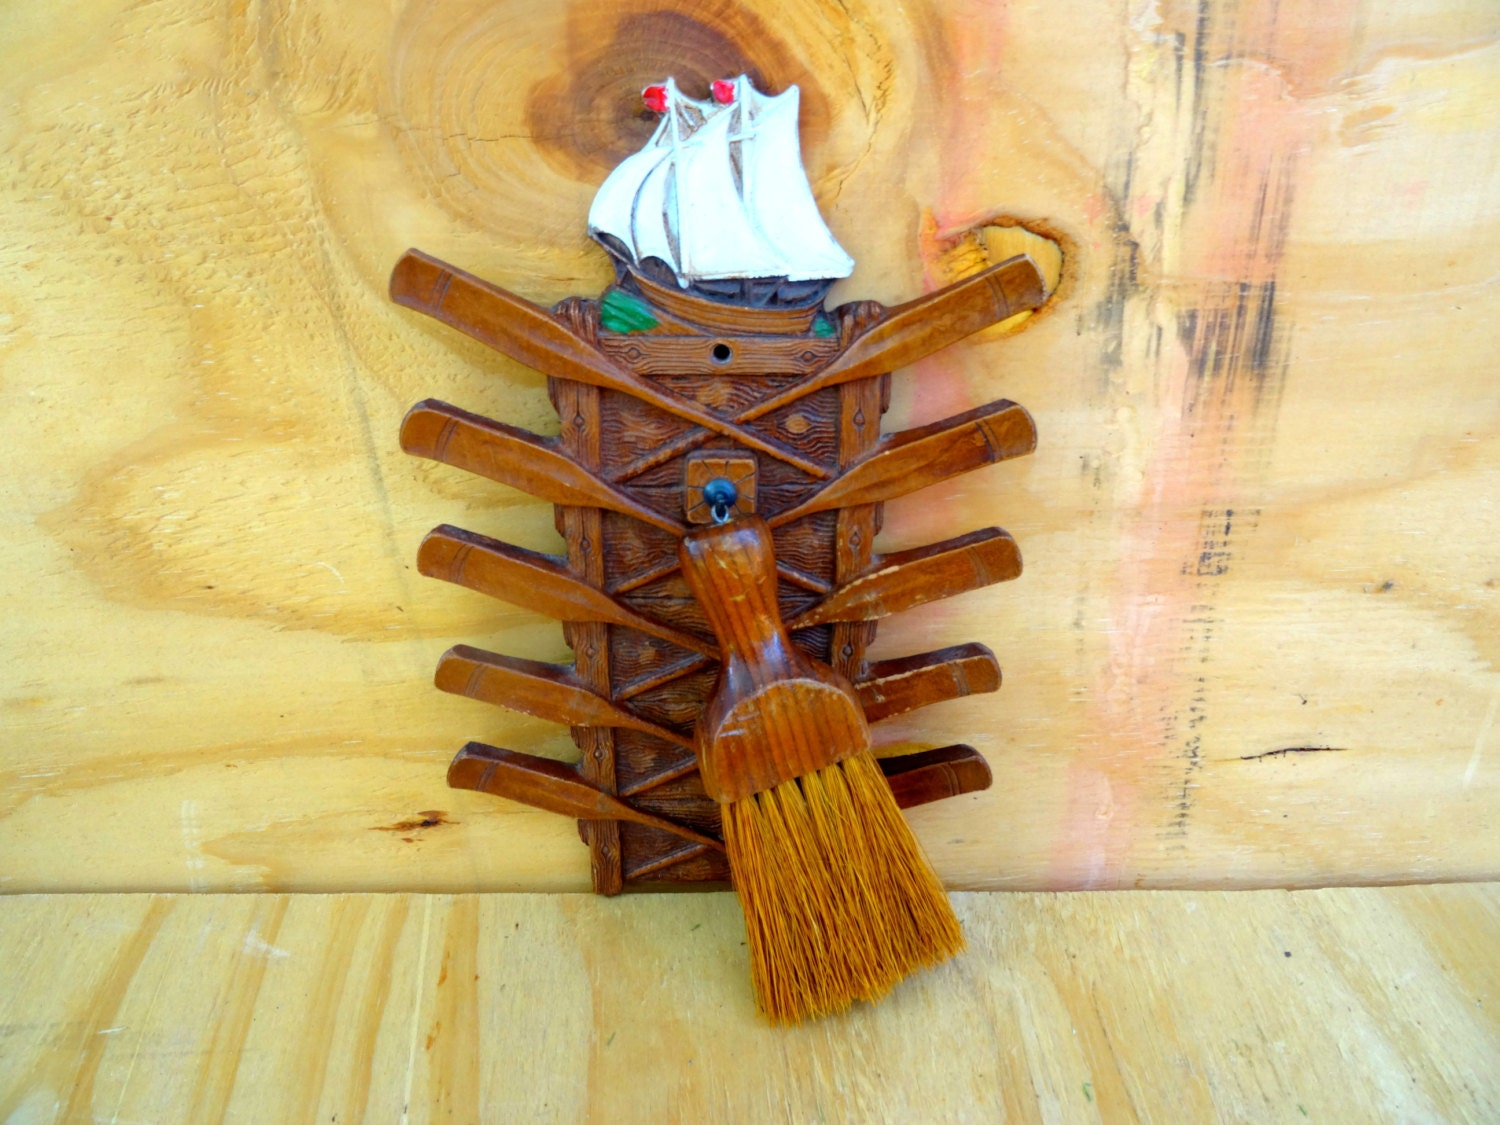 Vintage Brush Vintage Wisk Home Decor Male Accessory